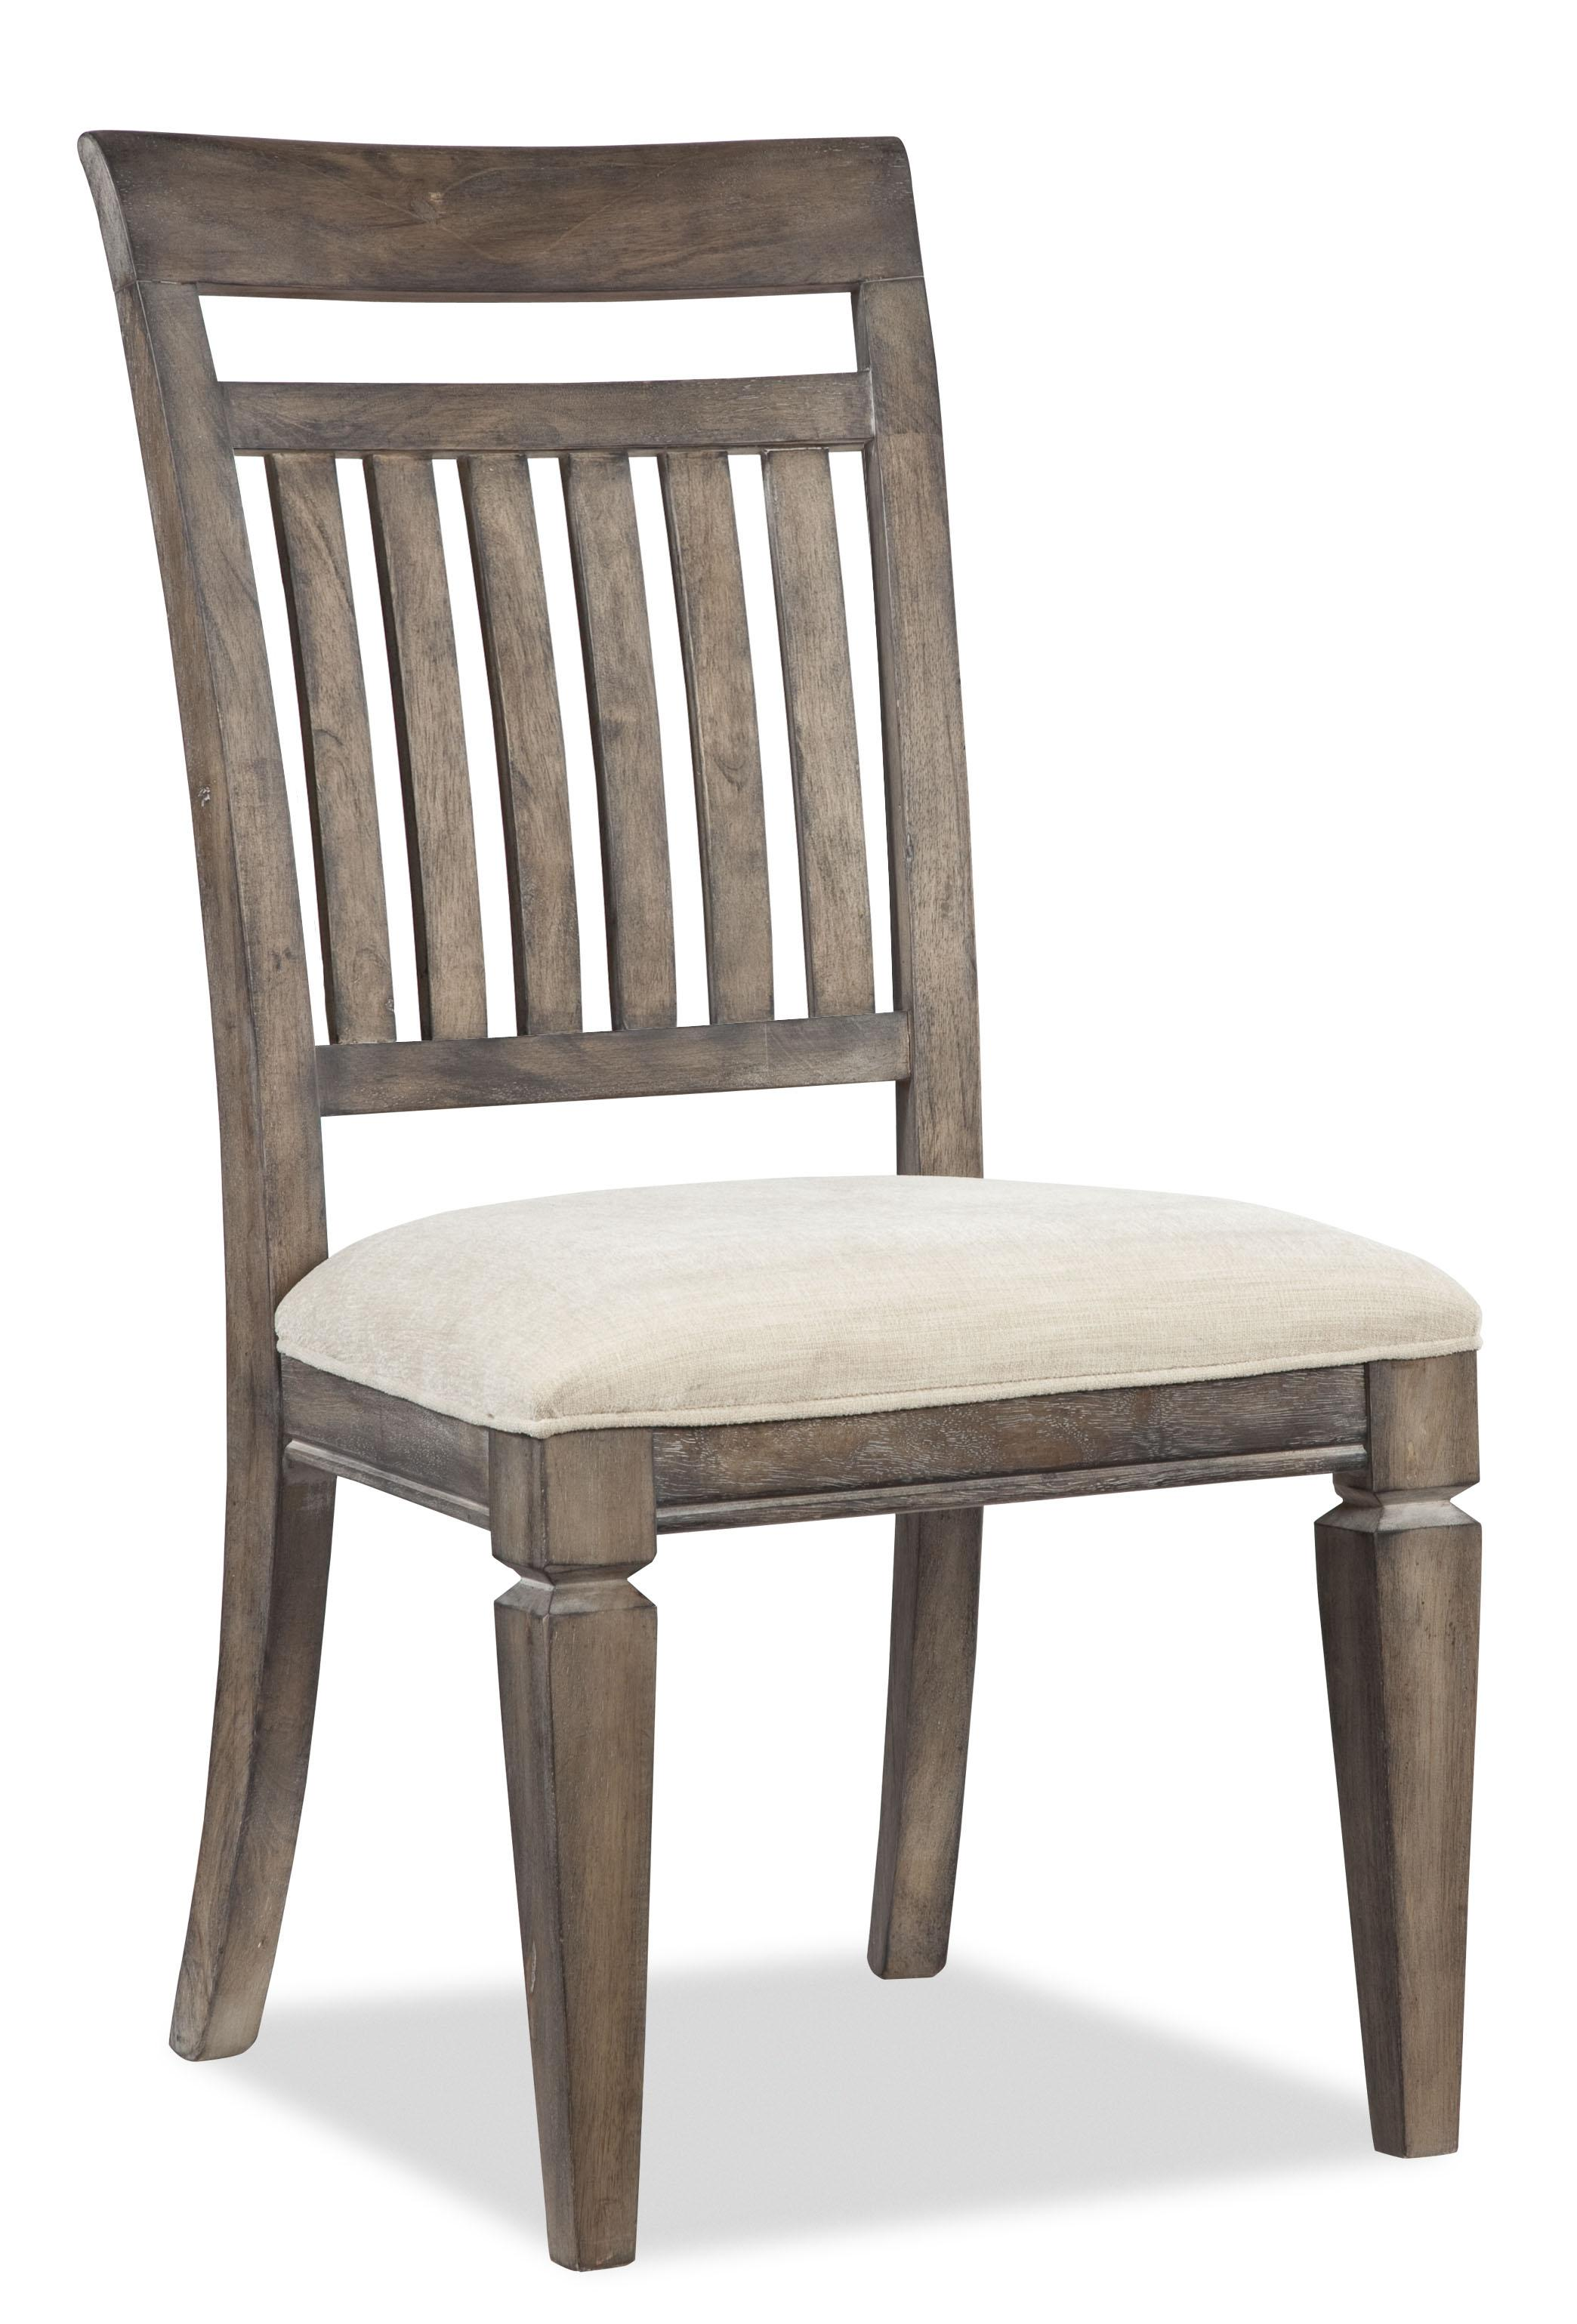 Legacy Classic Brownstone Village Slat Back Side Chair - Item Number: 2760-340 KD